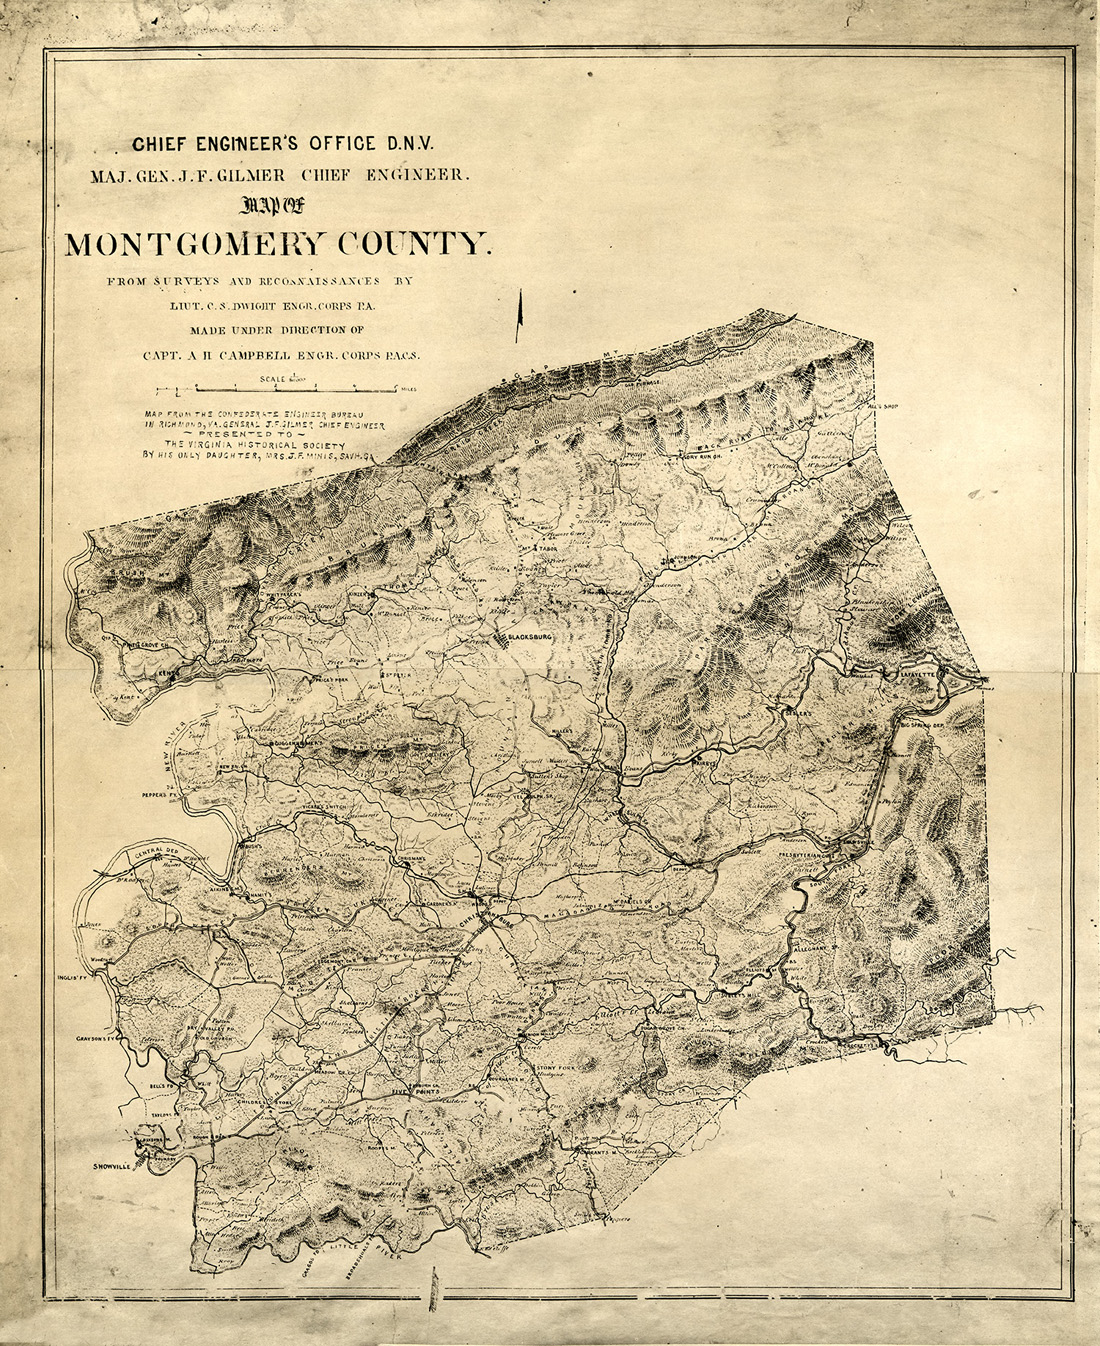 Montgomery County, VA 1860s - Confederate Map